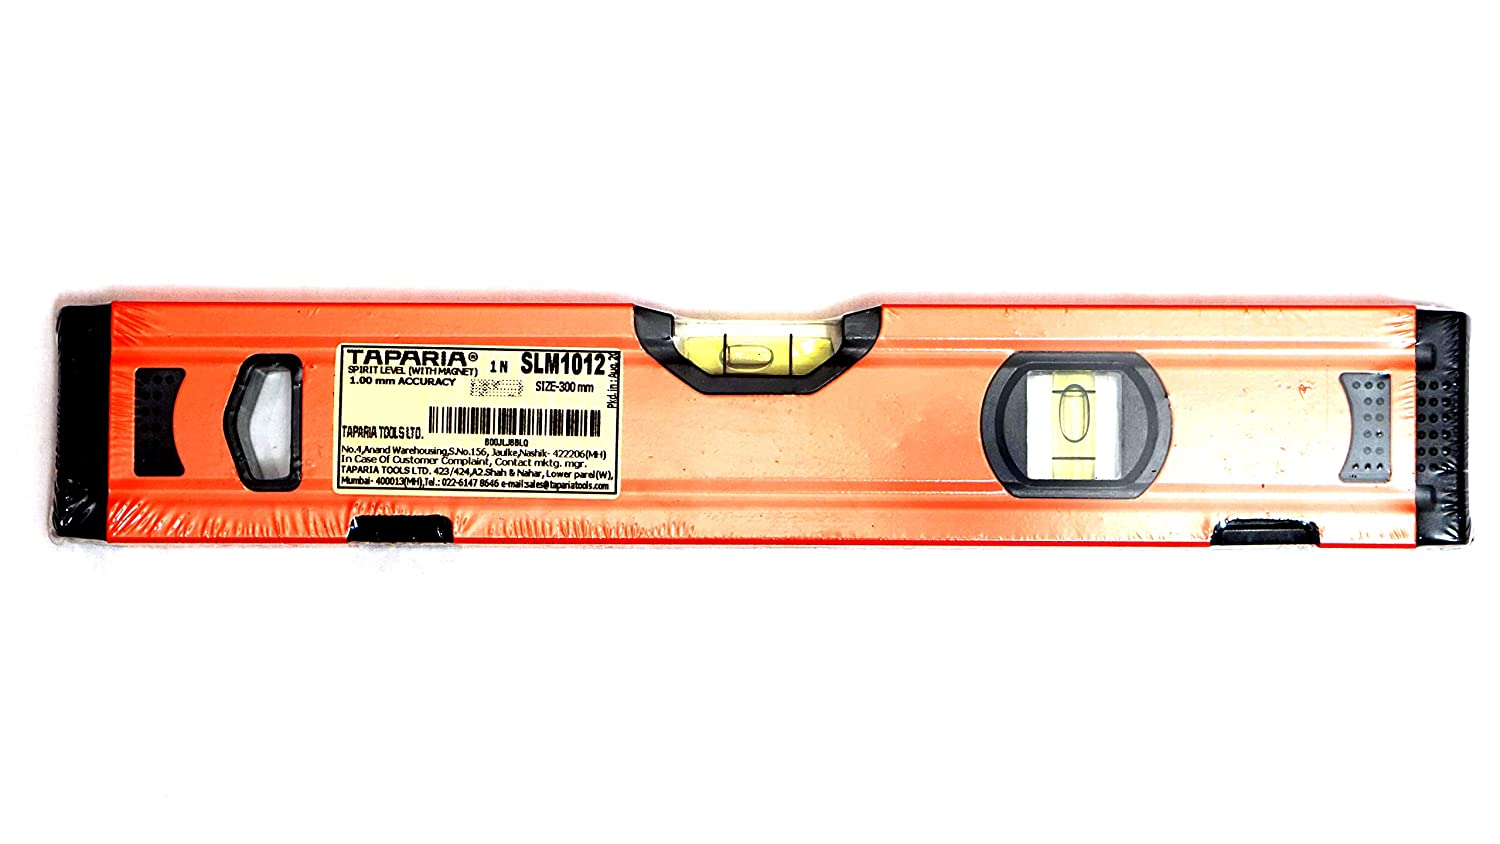 TAPARIA Spirit Level with Magnet, SLM 1012, 12-Inch: Amazon.in: Home Improvement